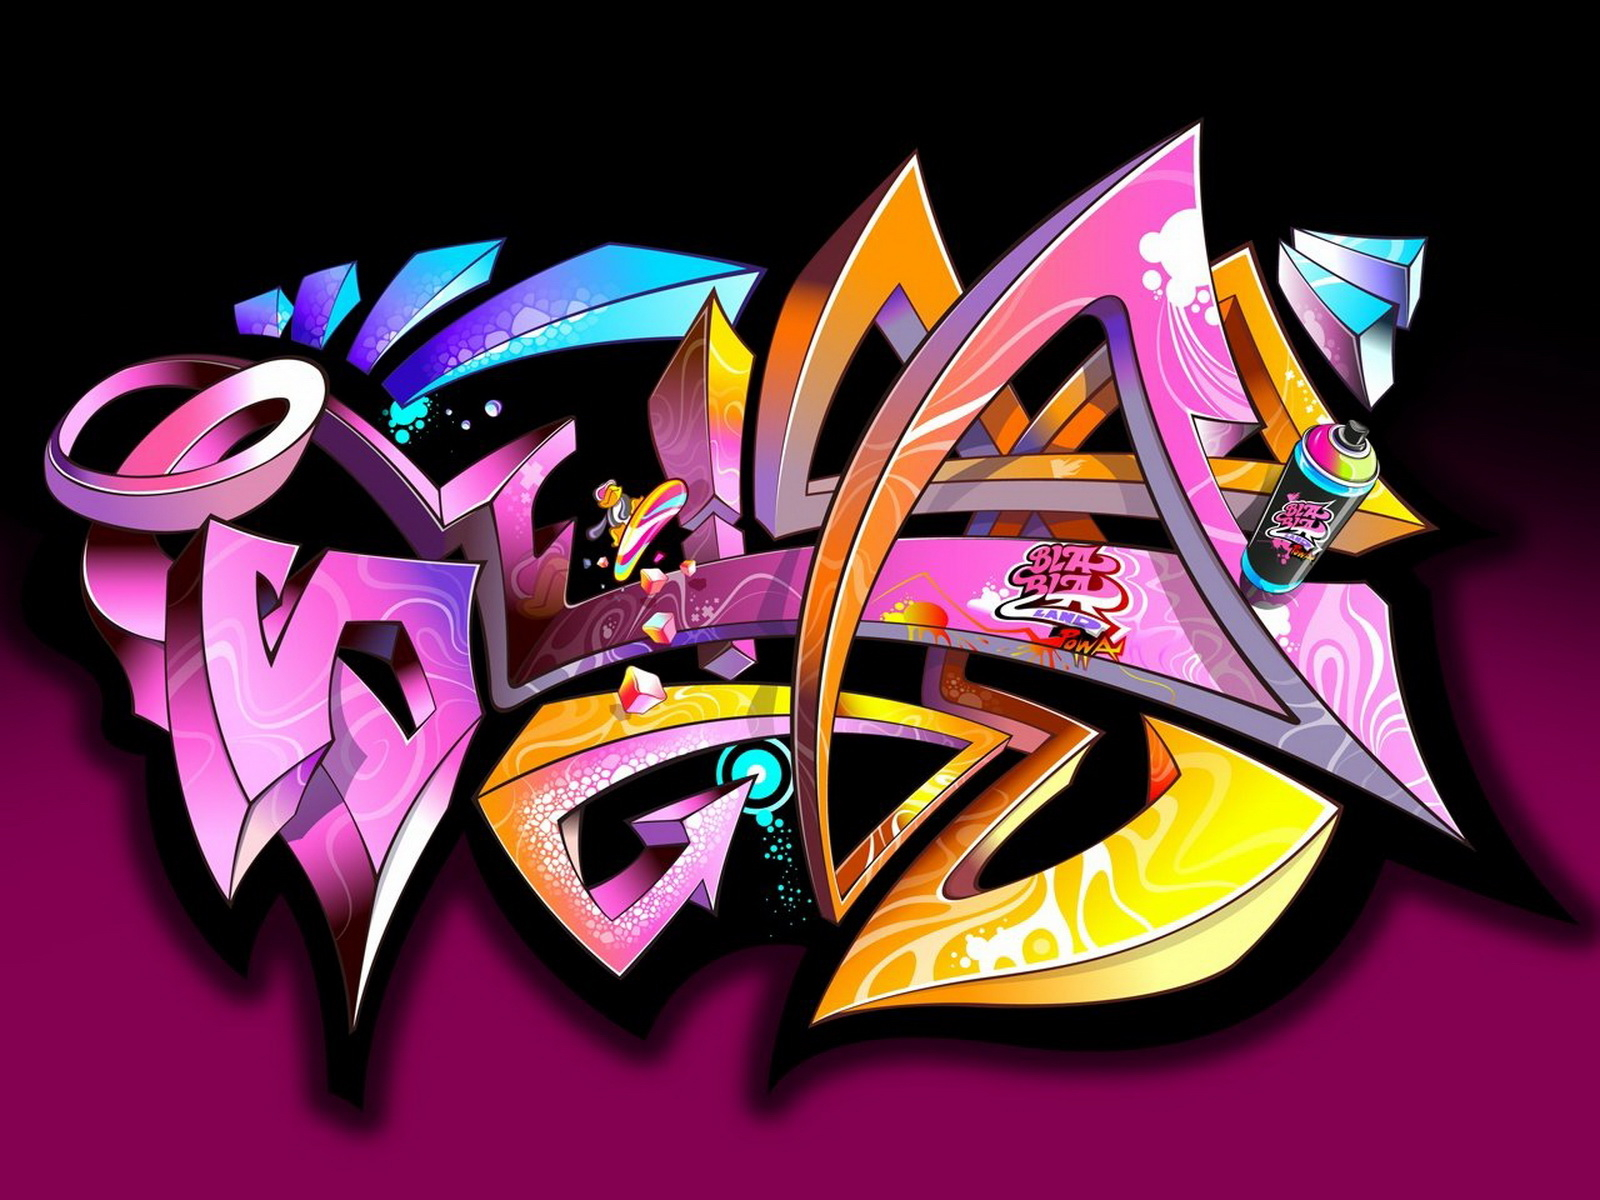 graffiti backgrounds graffiti backgrounds graffiti backgrounds ...: rafacineart.blogspot.com/2013/01/graffiti-backgrounds.html